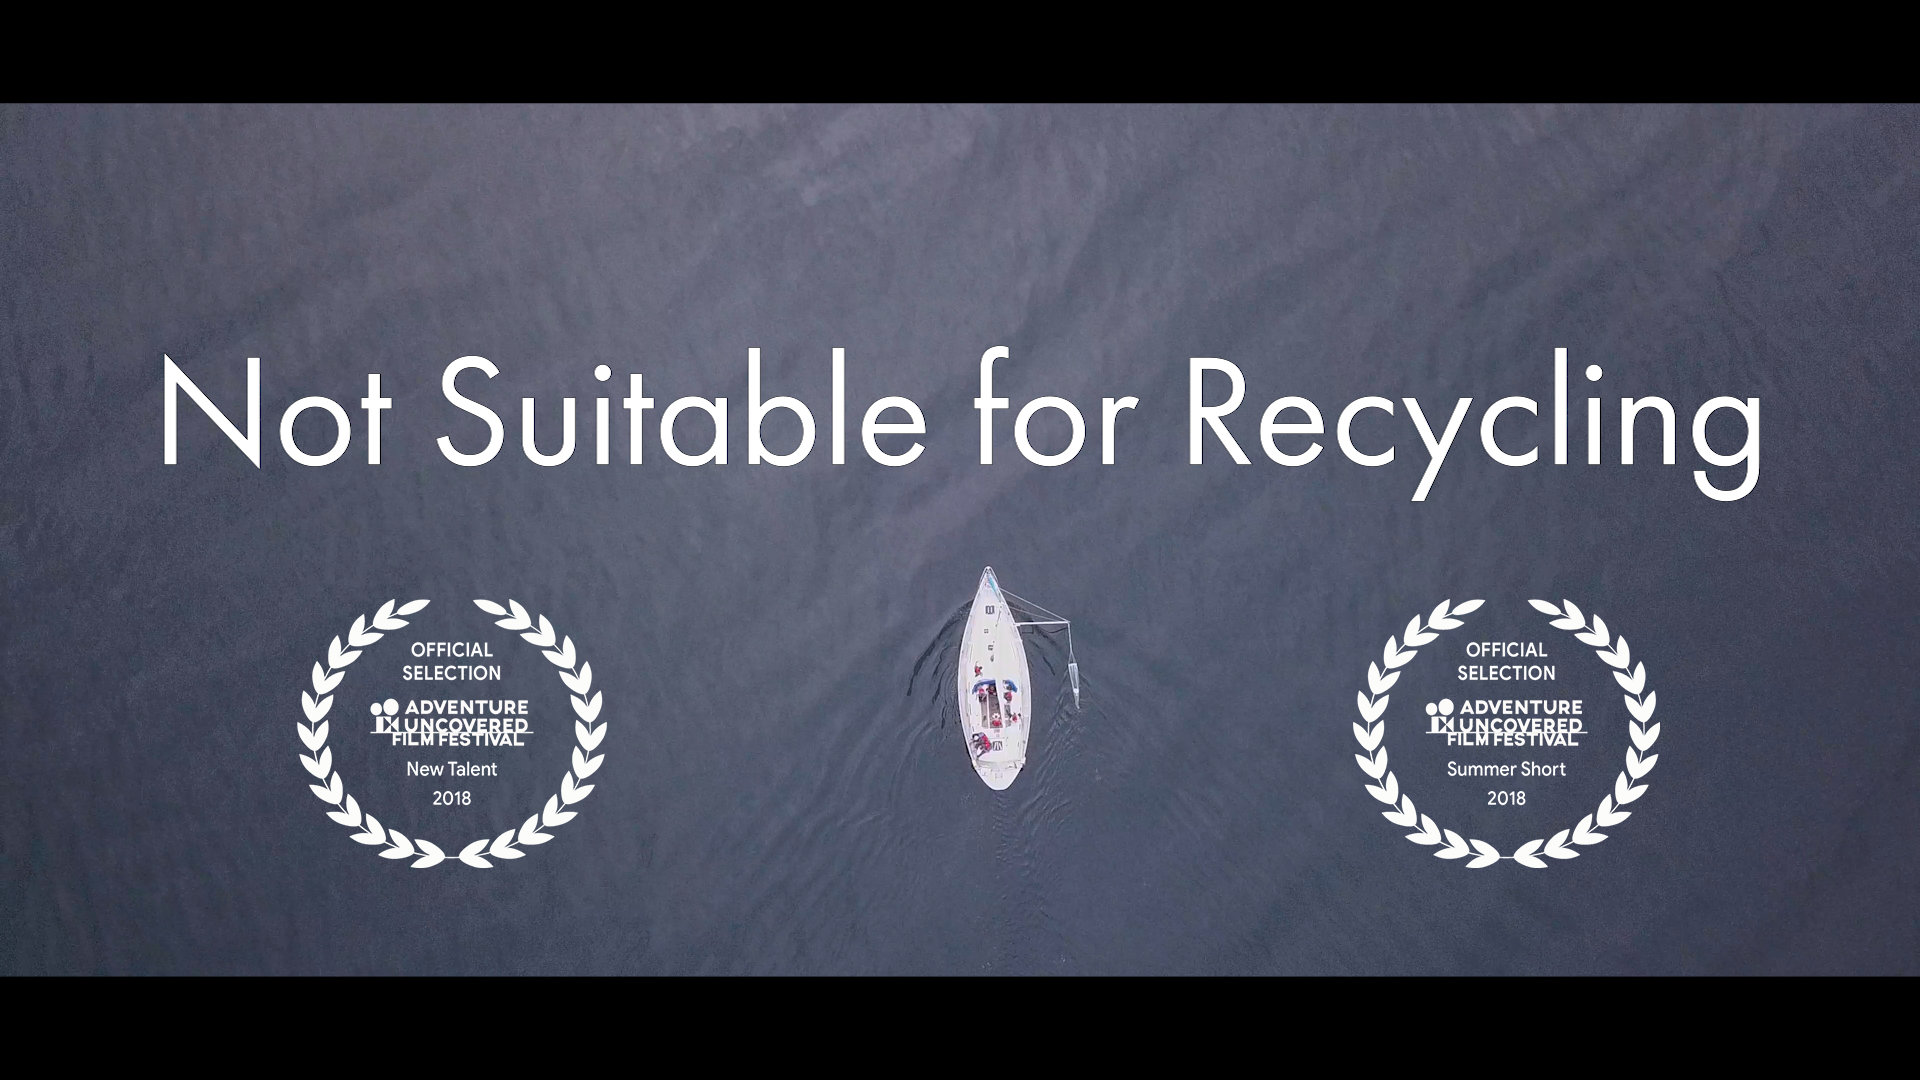 Sail Britain: Not Suitable for Recycling